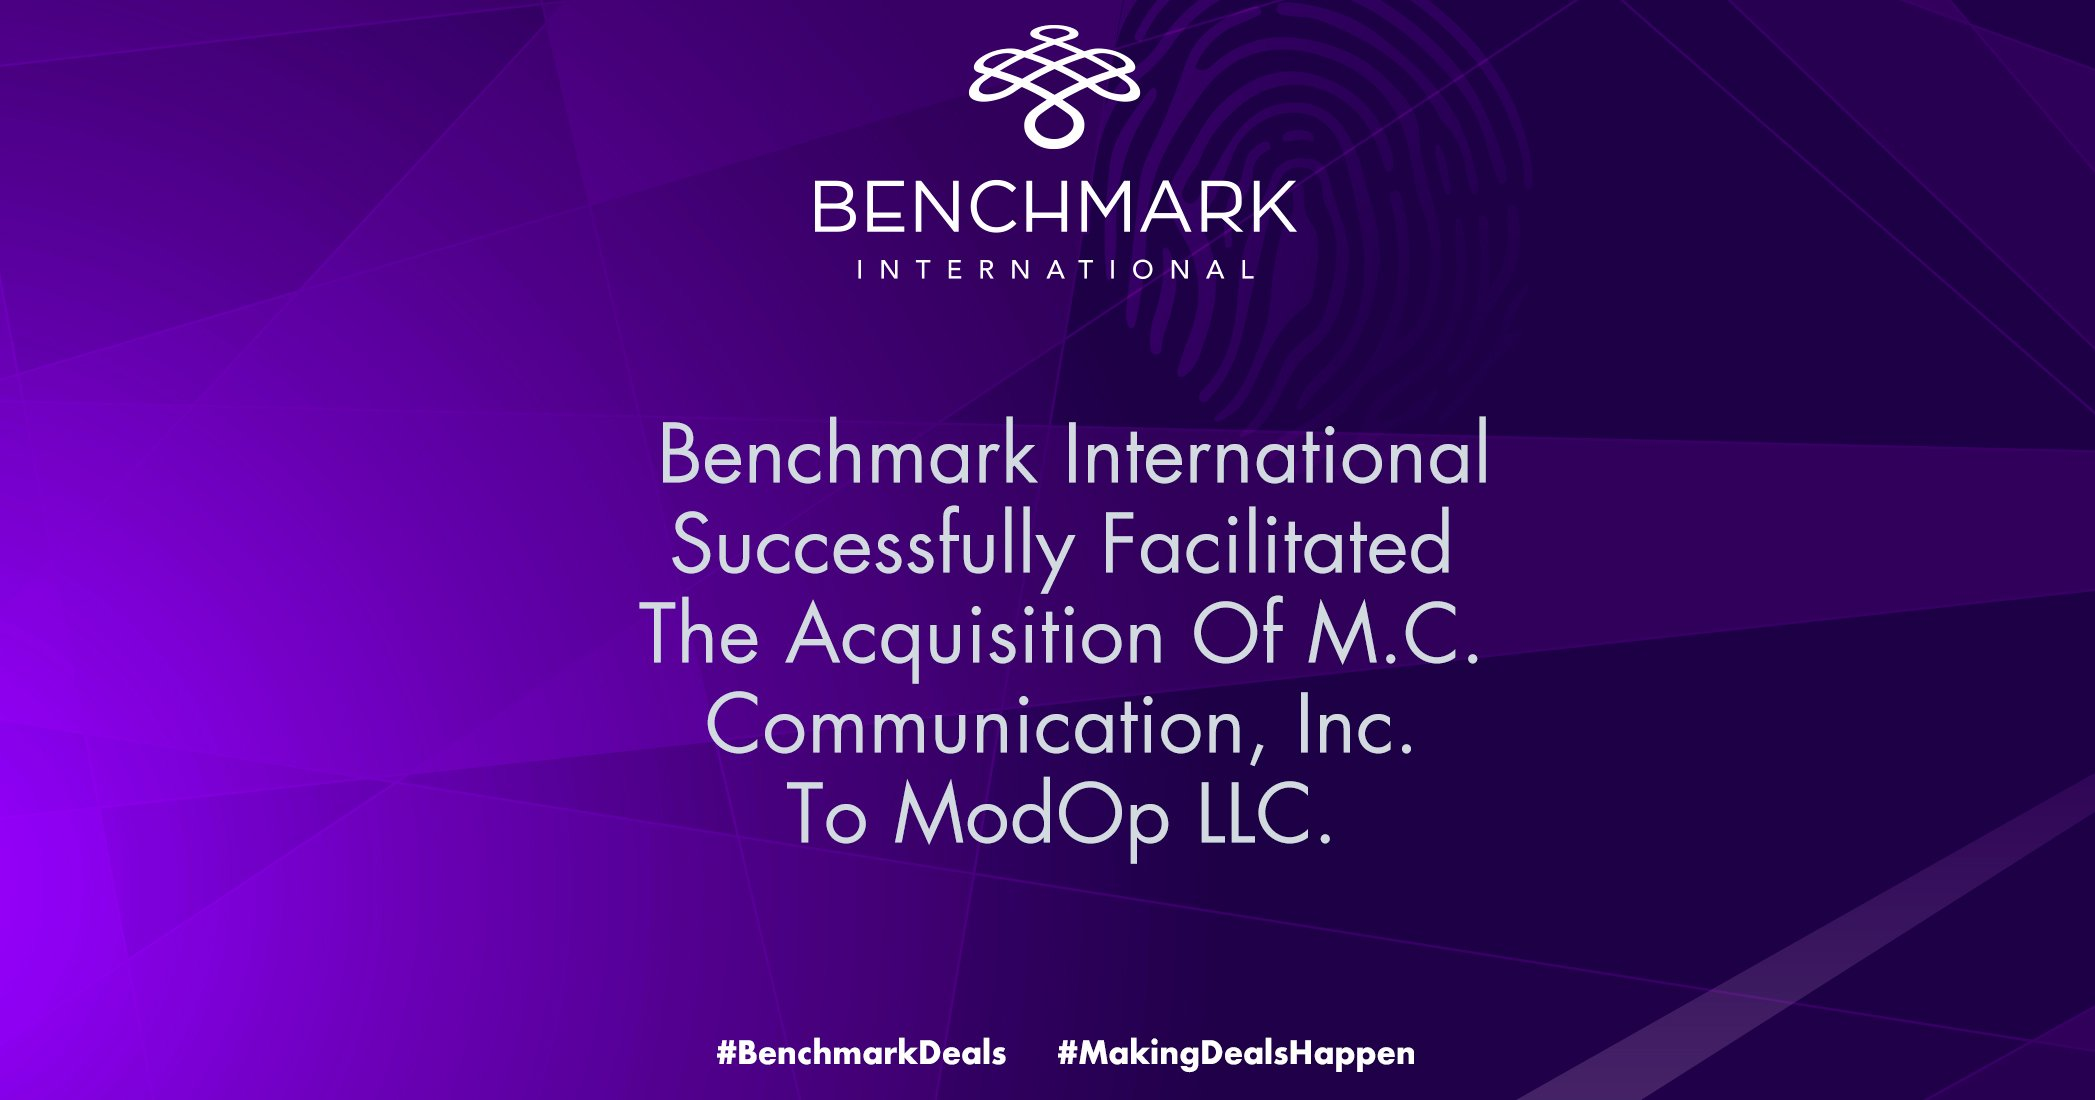 Benchmark International Successfully Facilitated The Acquisition Of M.C. Communication, Inc. To ModOp LLC.